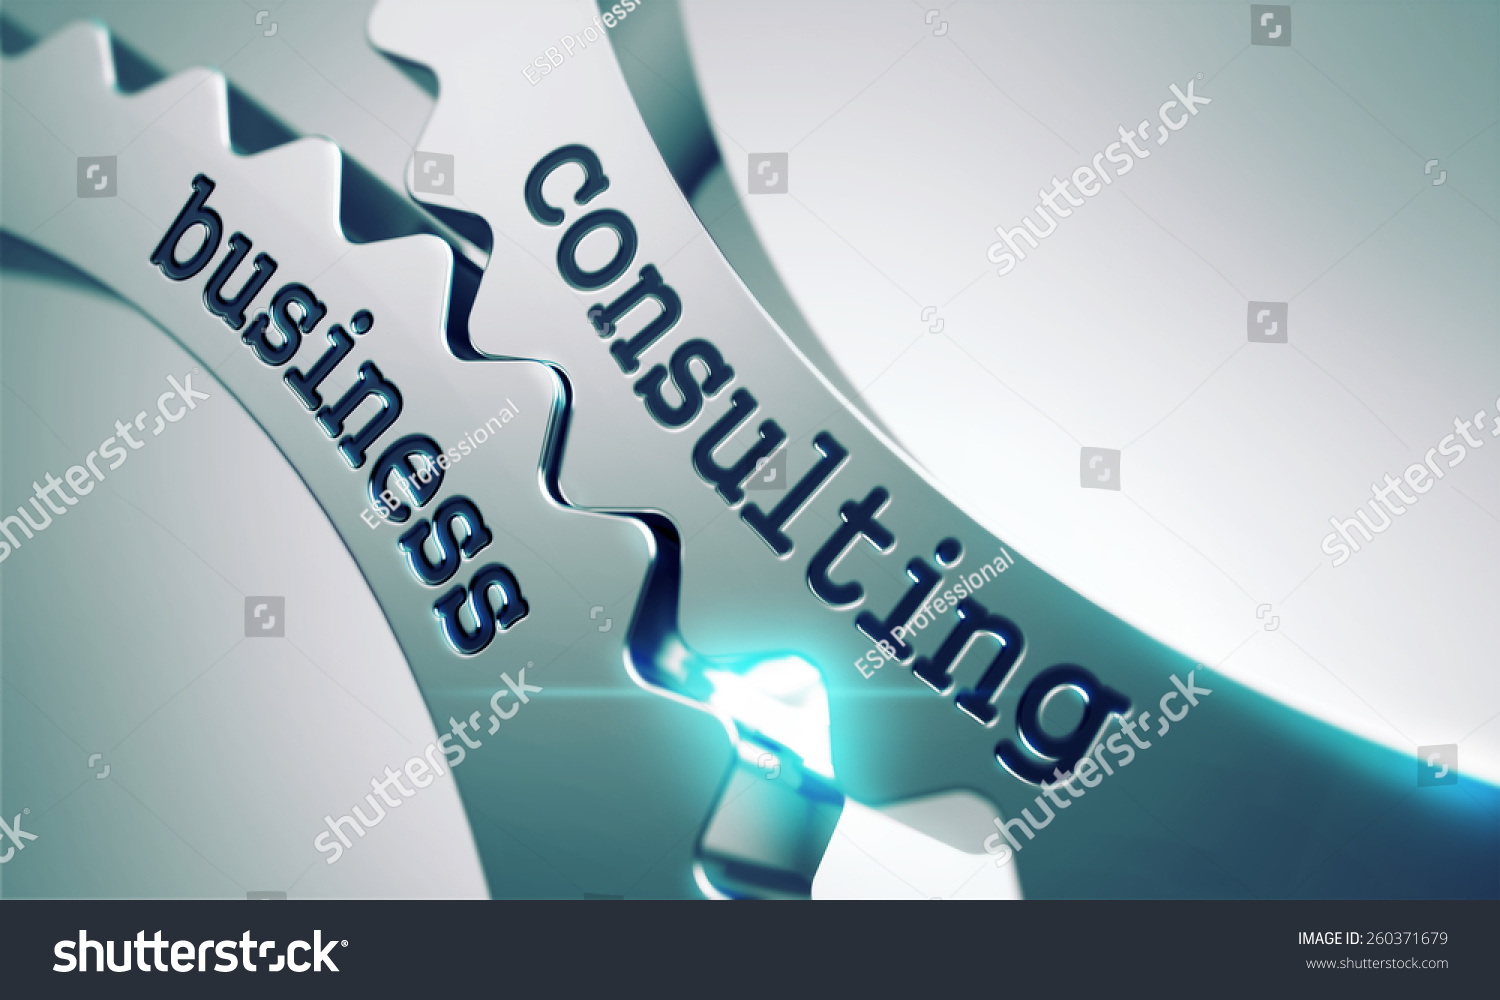 What Are the Control Systems of a Business?